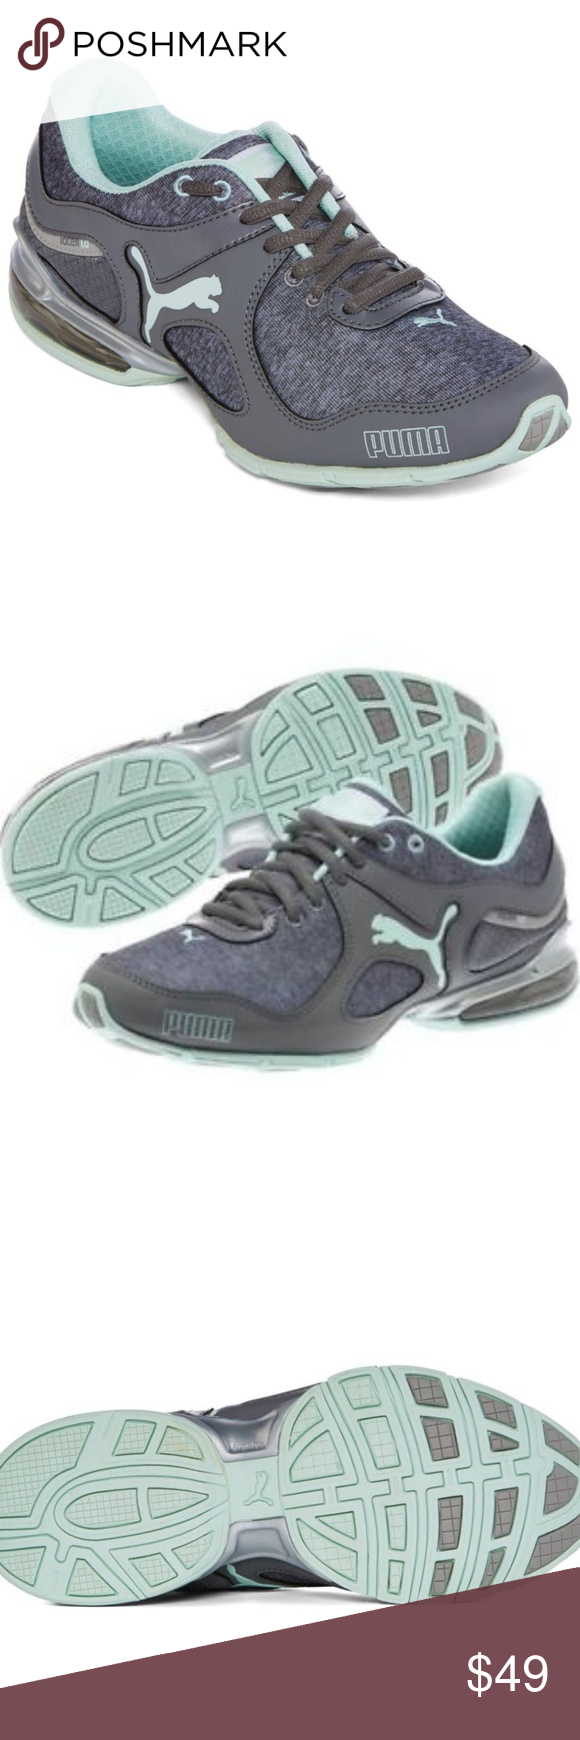 155b46559b33 Puma Women s Cell Riaz Gray Athletic Sneakers Same day or next day shipping PUMA  Cell Riaz